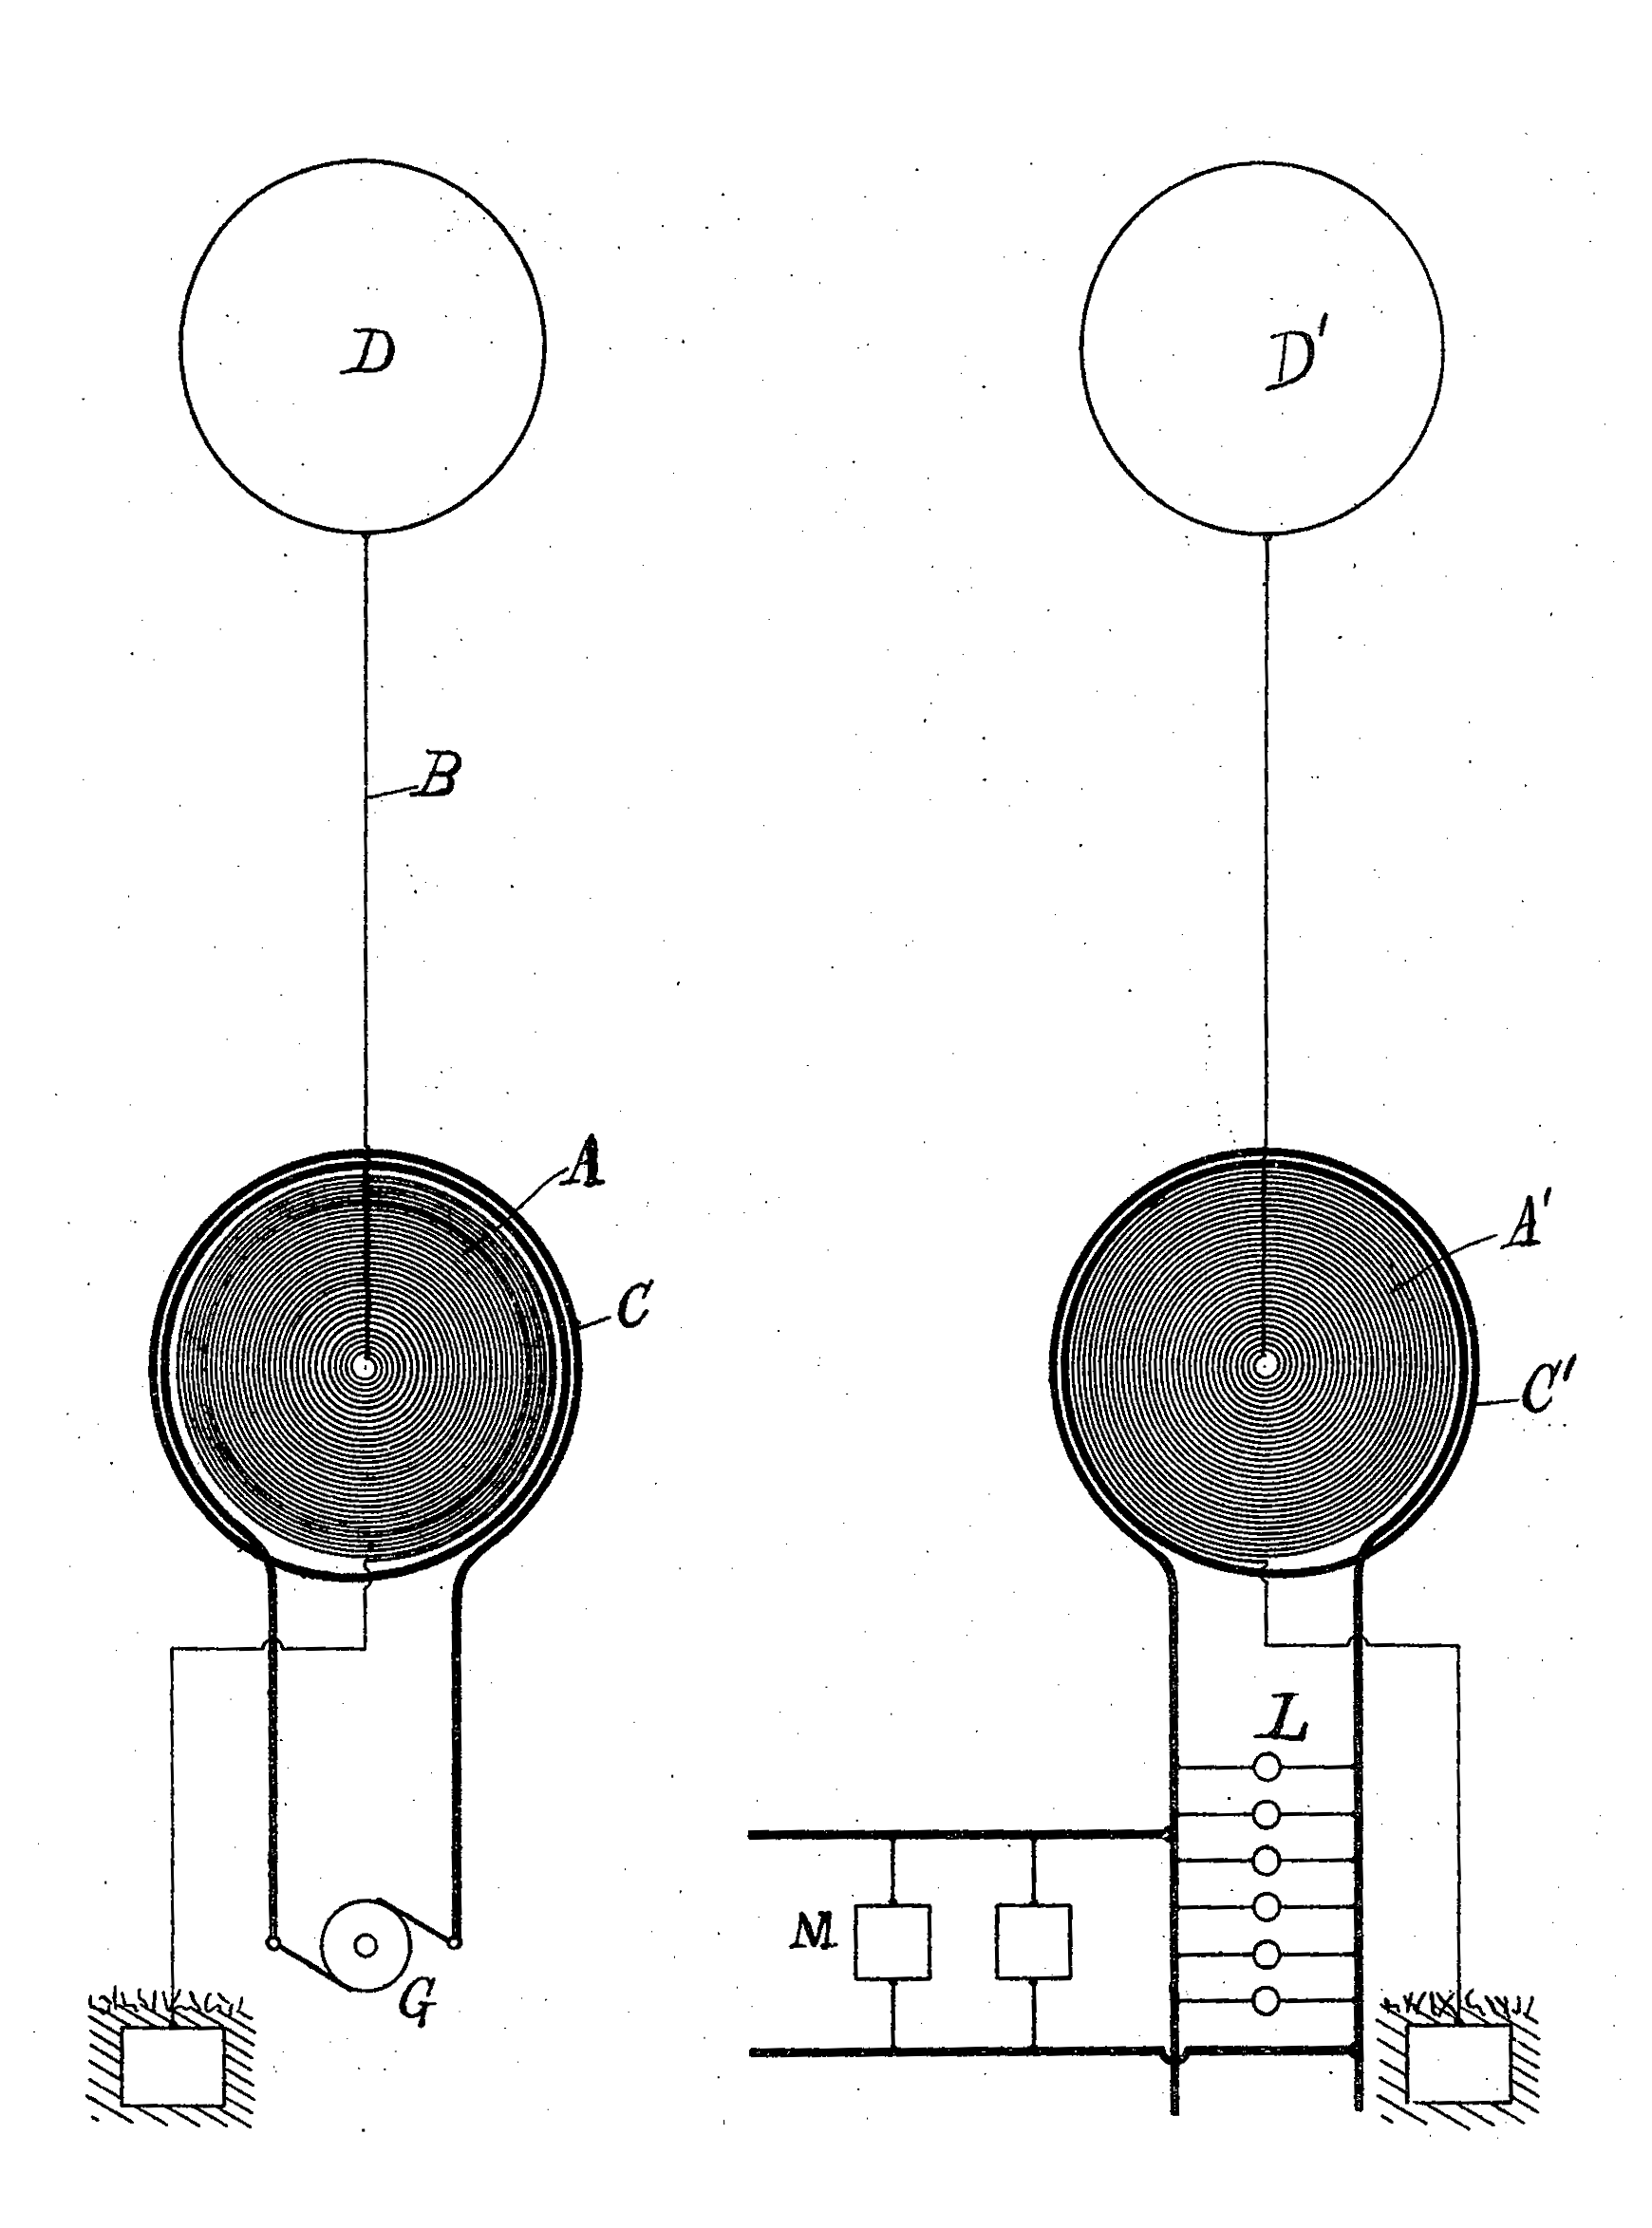 tesla coil tesla s proposed wireless power system from his 1897 patent the transmitter left consists of a tesla coil a c driving an elevated capacitive terminal